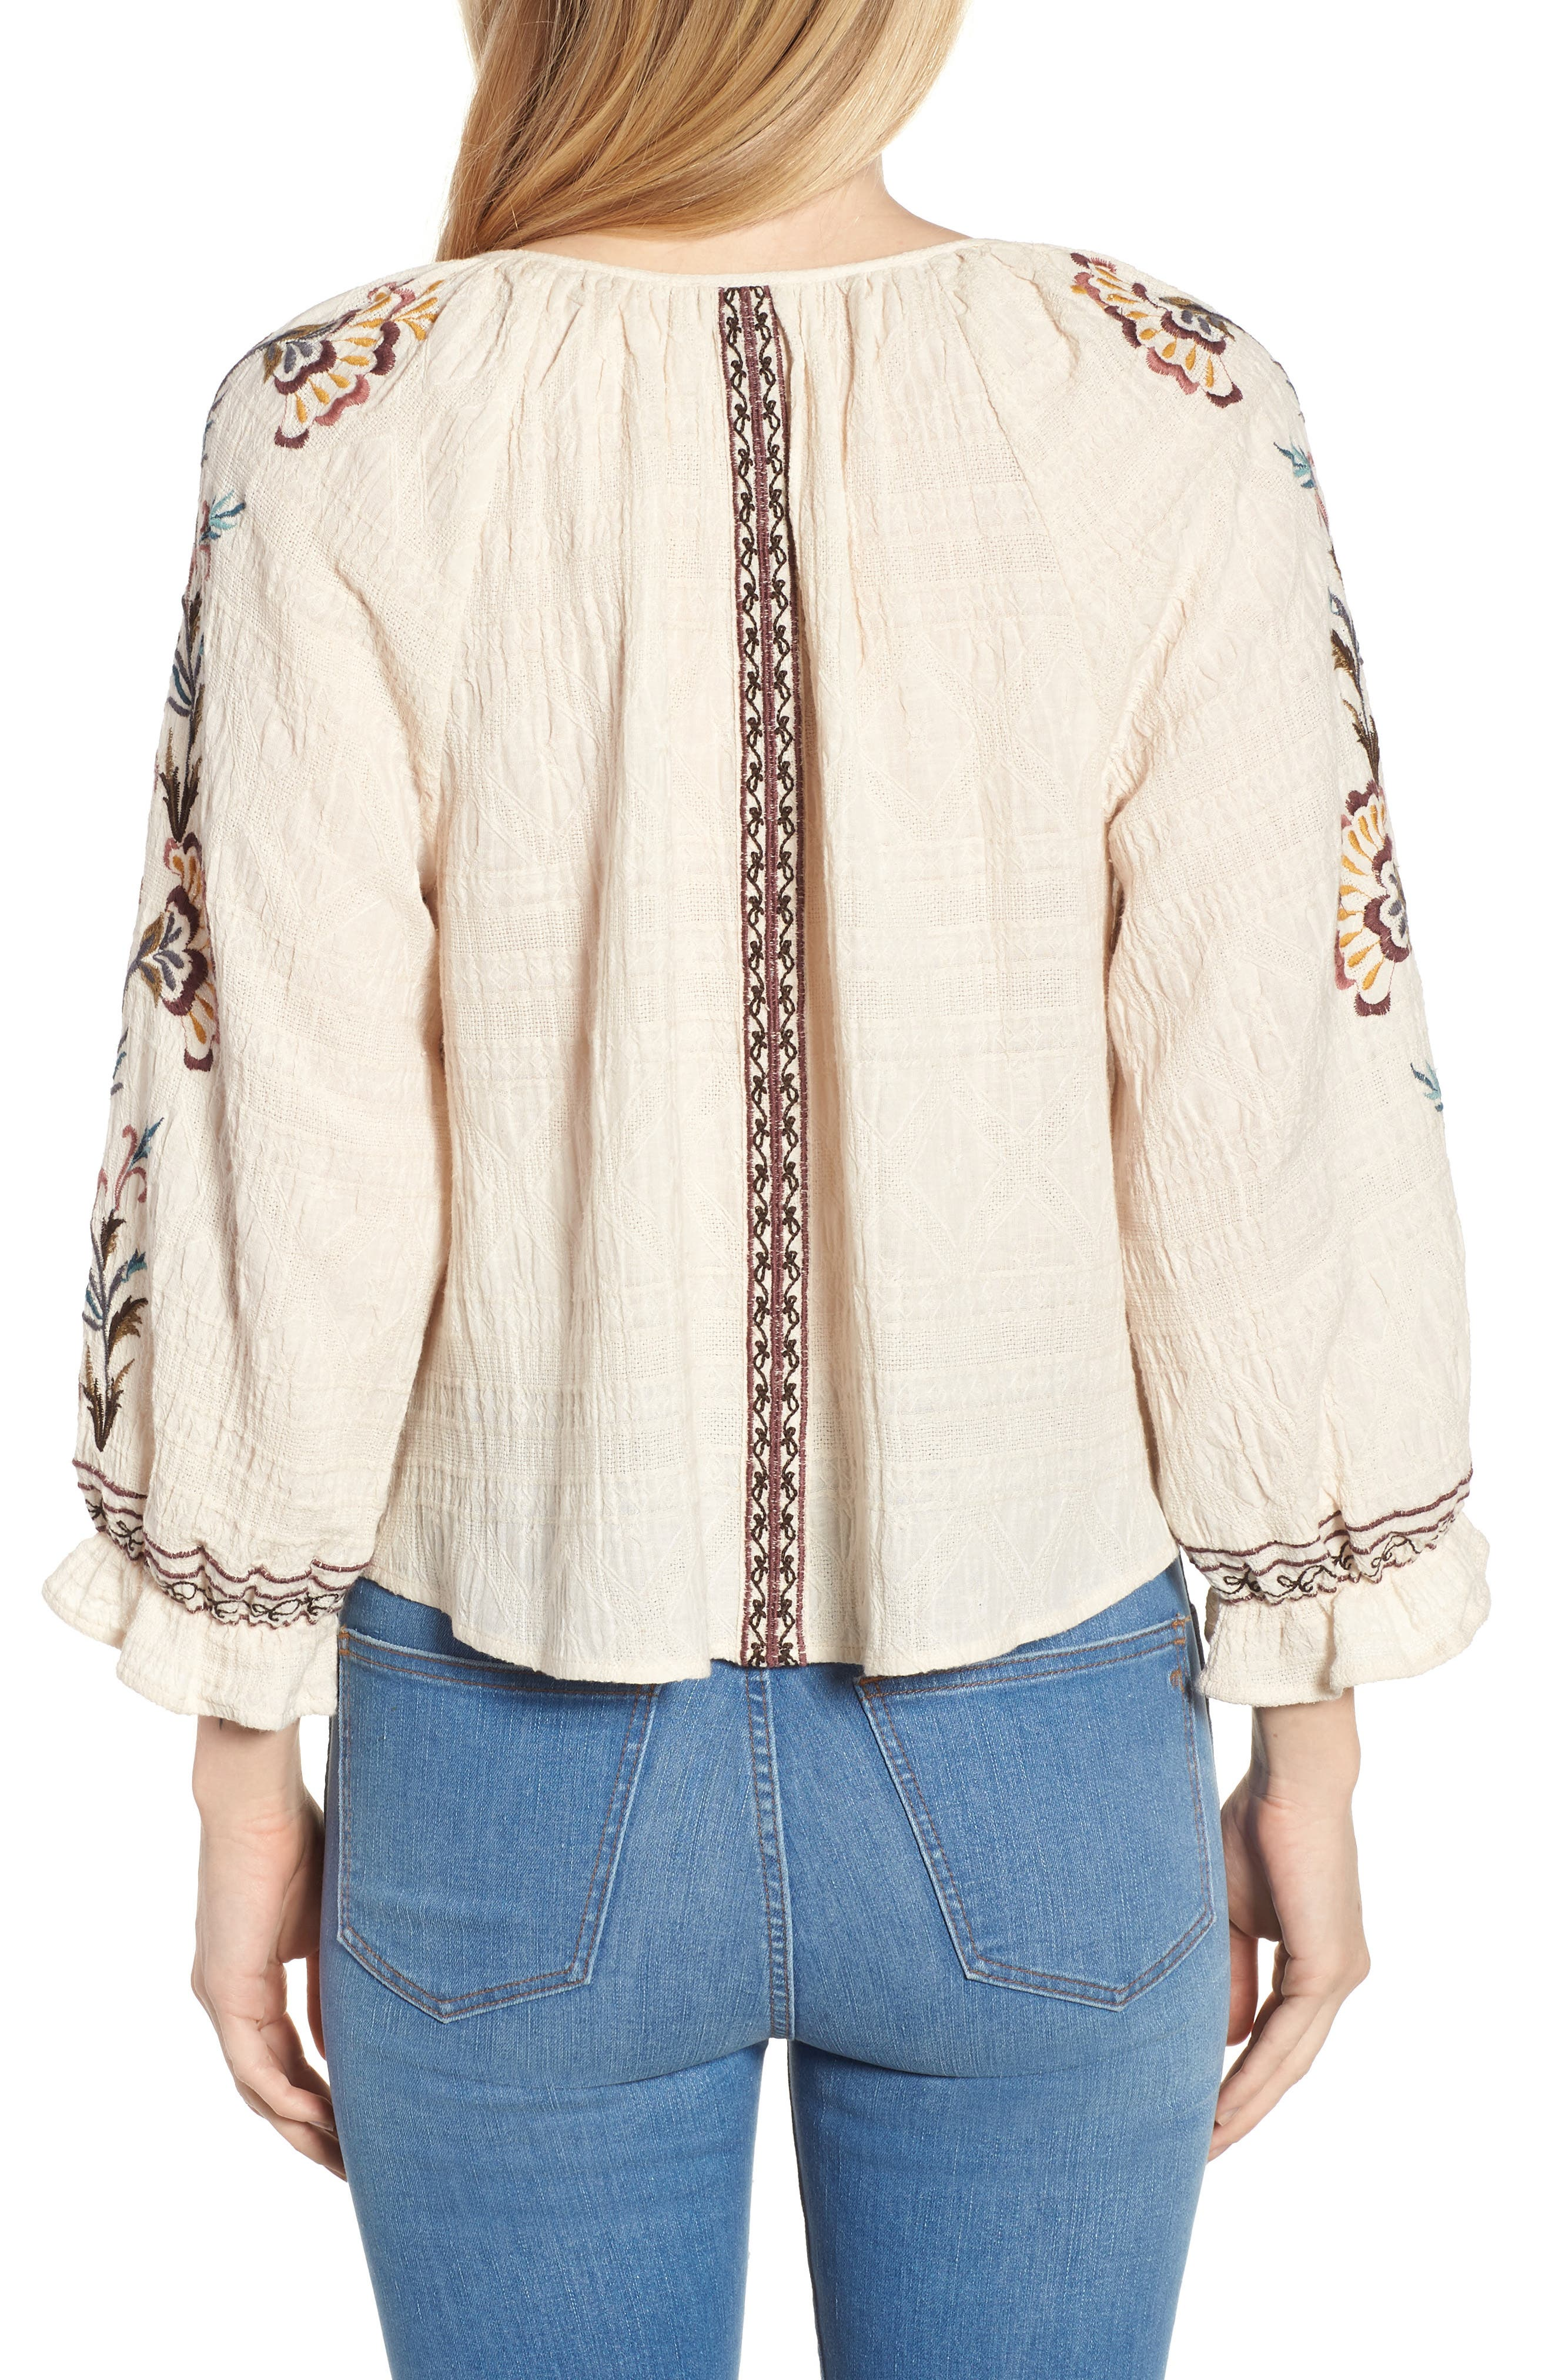 Embroidered Peasant Blouse,                             Alternate thumbnail 2, color,                             900